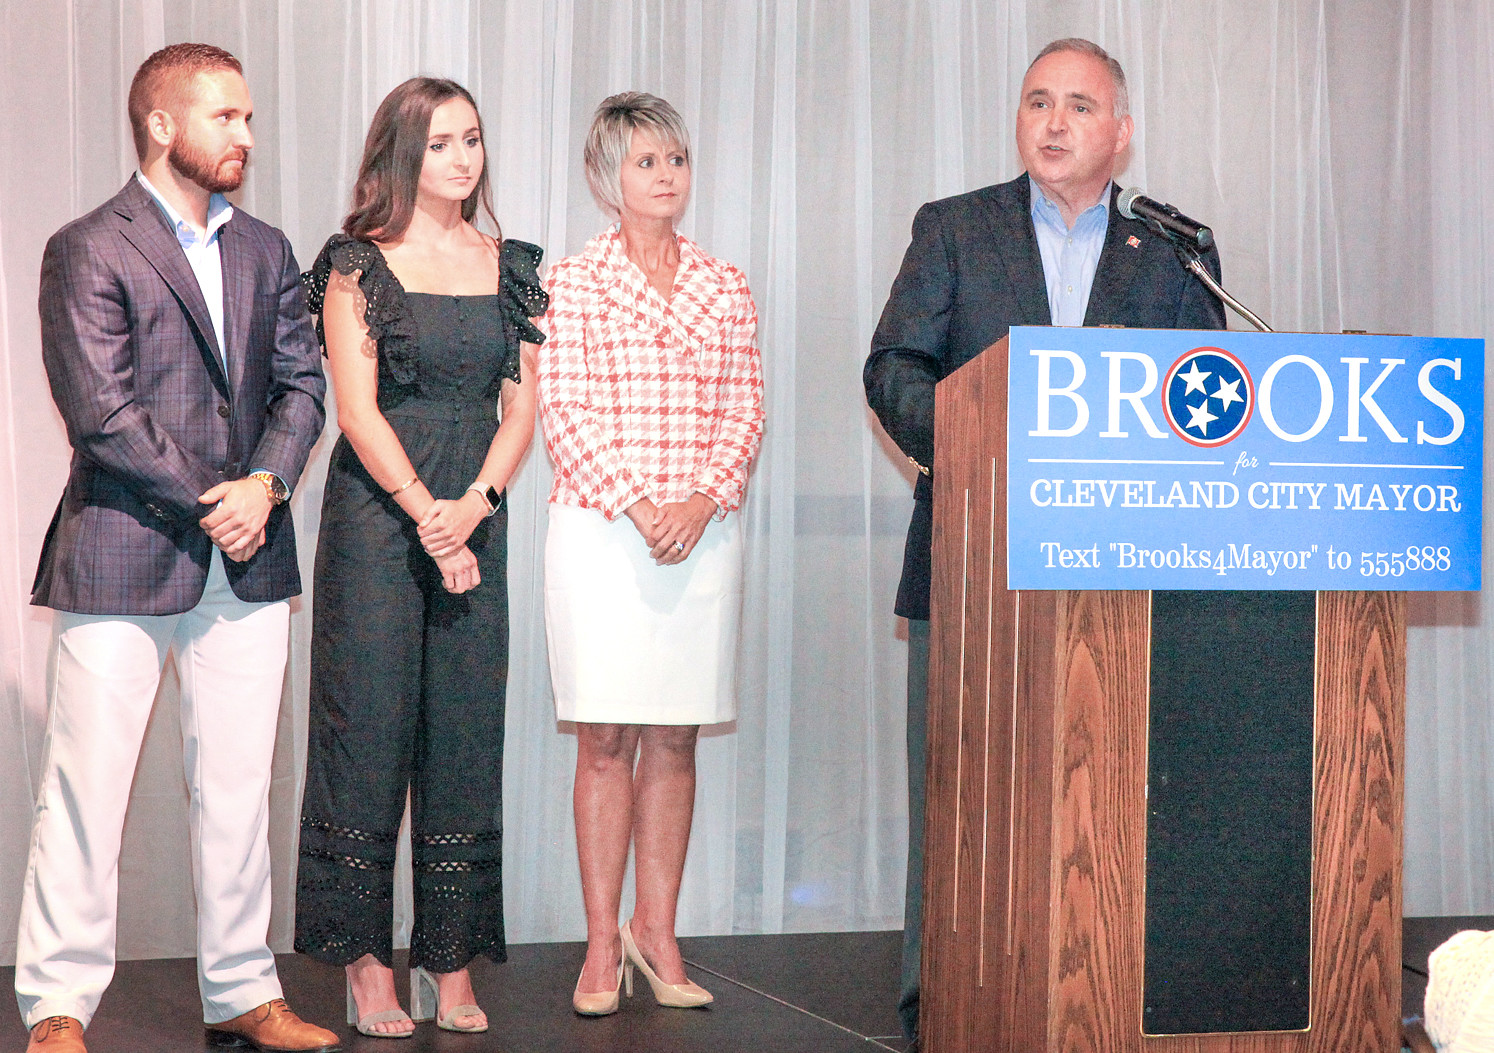 REP. KEVIN BROOKS, right, addresses the crowd at his official Campaign Kickoff on Friday evening at the Museum Center in downtown Cleveland. From left are Brooks' family: son, Zach; daughter, Elizabeth and wife, Kim.